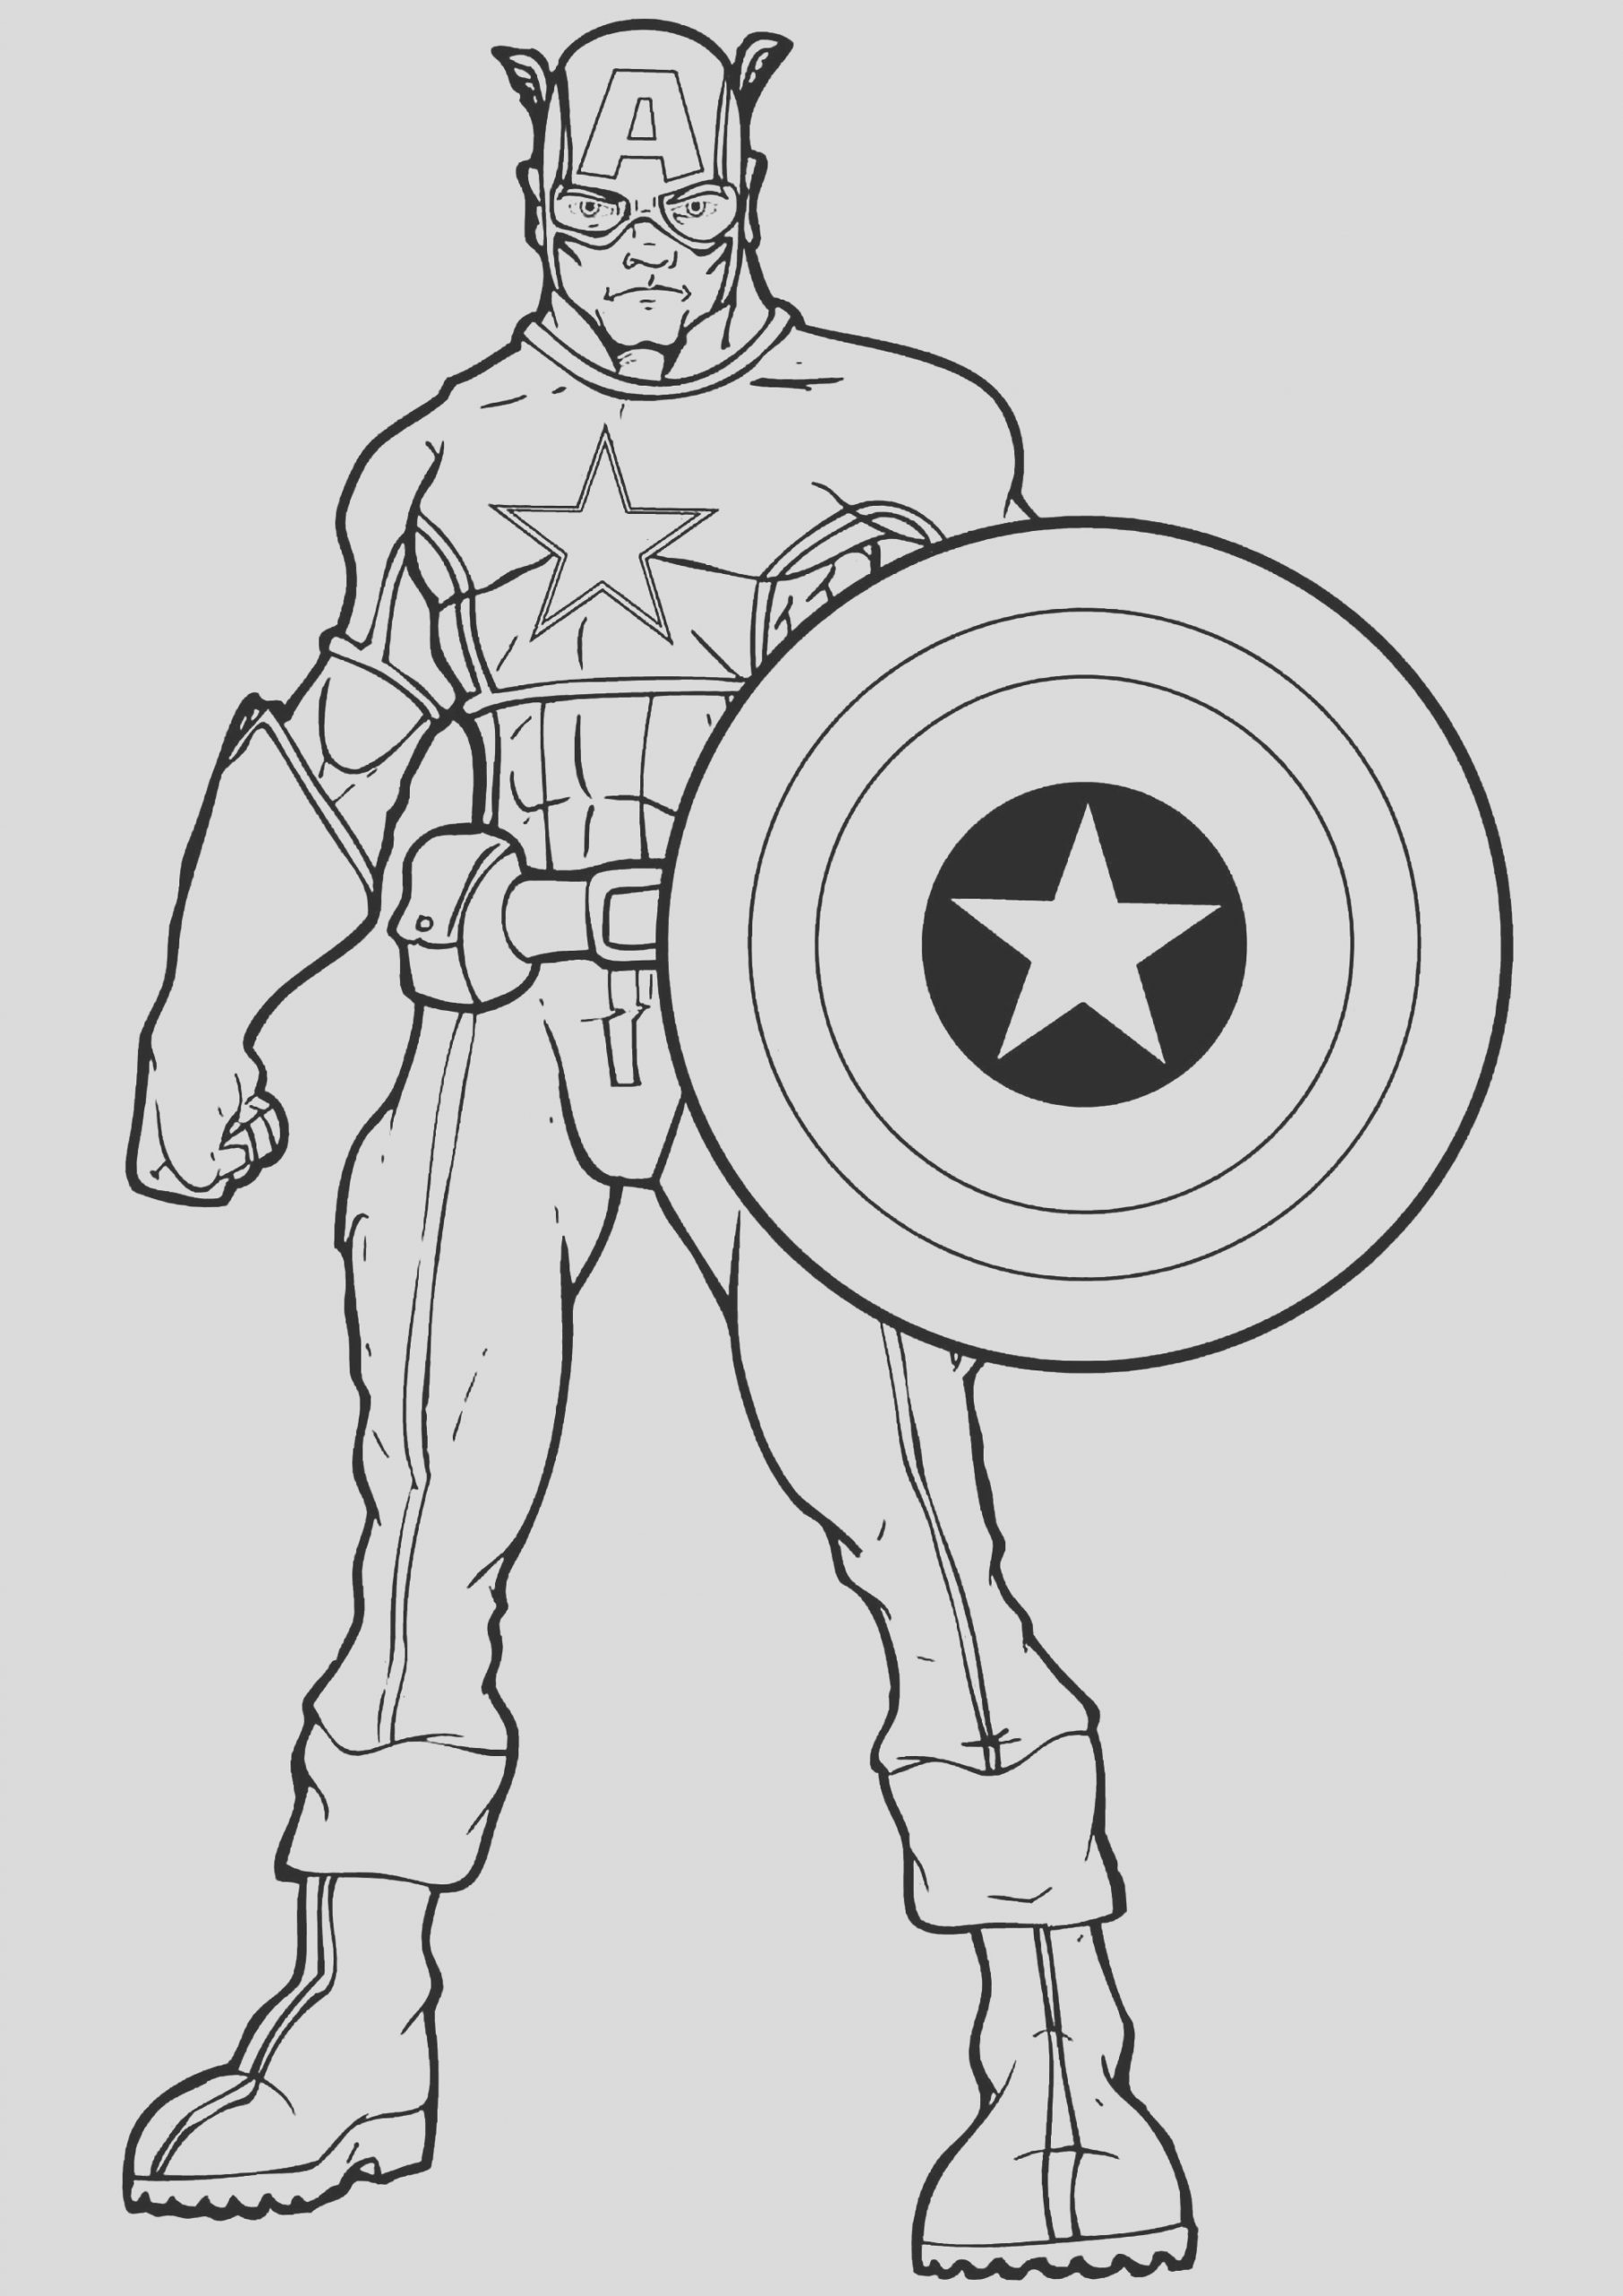 image=captain america coloring pages for children captain america 3283 1